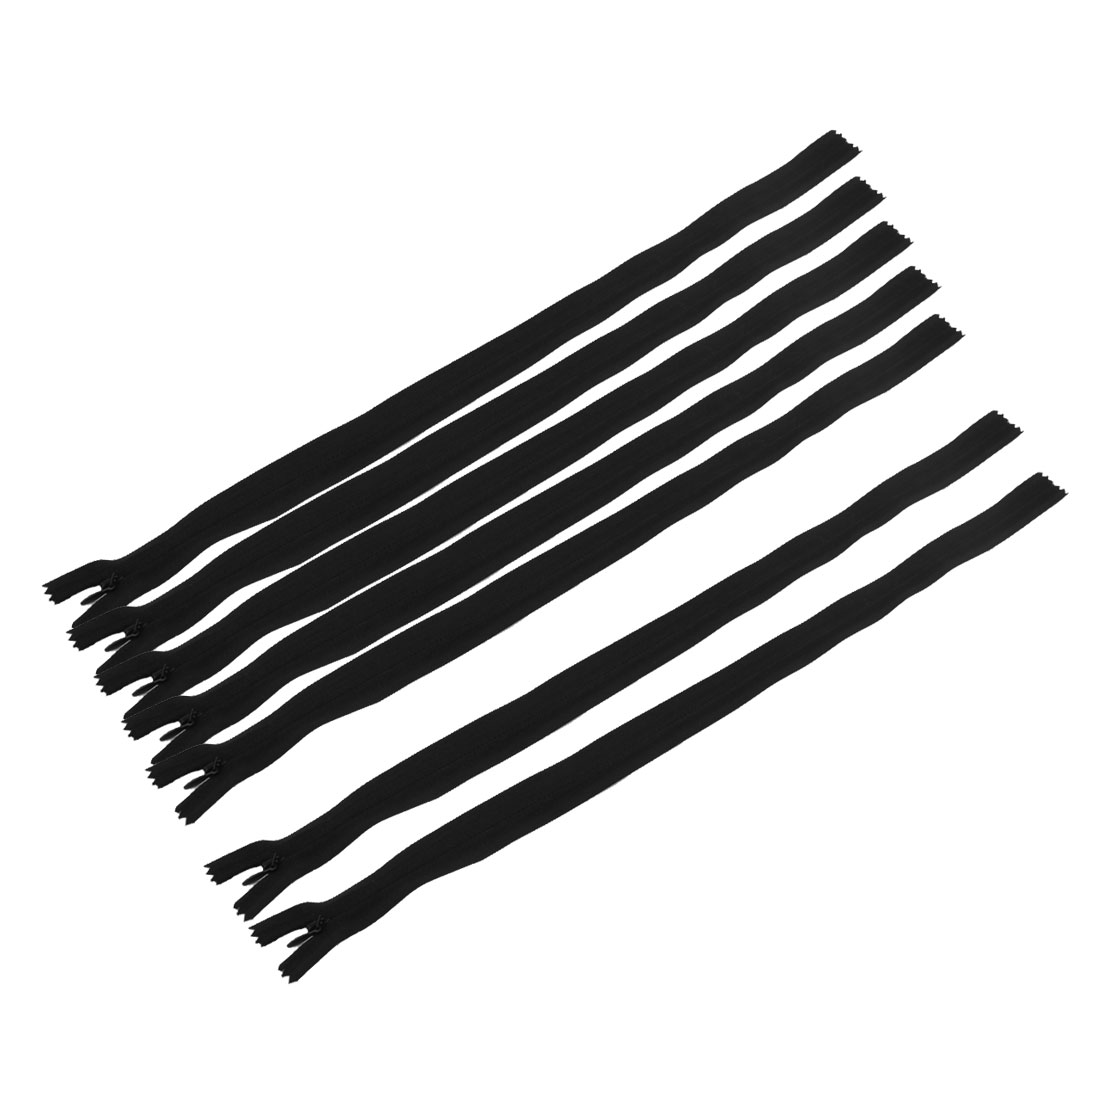 Home Tailor Nylon Dress Sewing Tool Invisible Smooth Zipper Black 46cm Length 7 Pcs